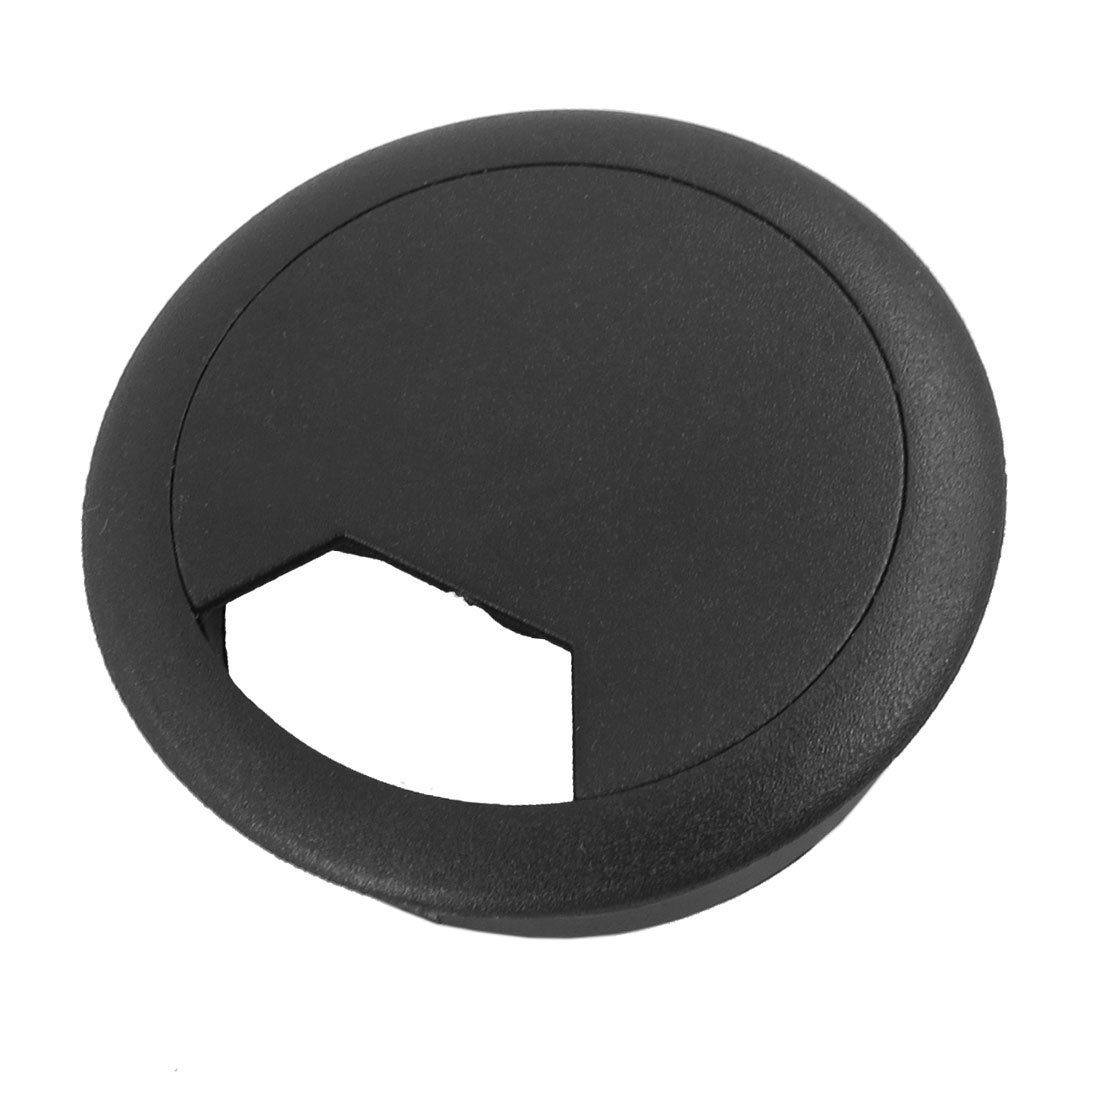 Promotion! 2 Pcs 50mm Diameter Desk Wire Cord Cable Grommets Hole Cover Black Hard Plastic